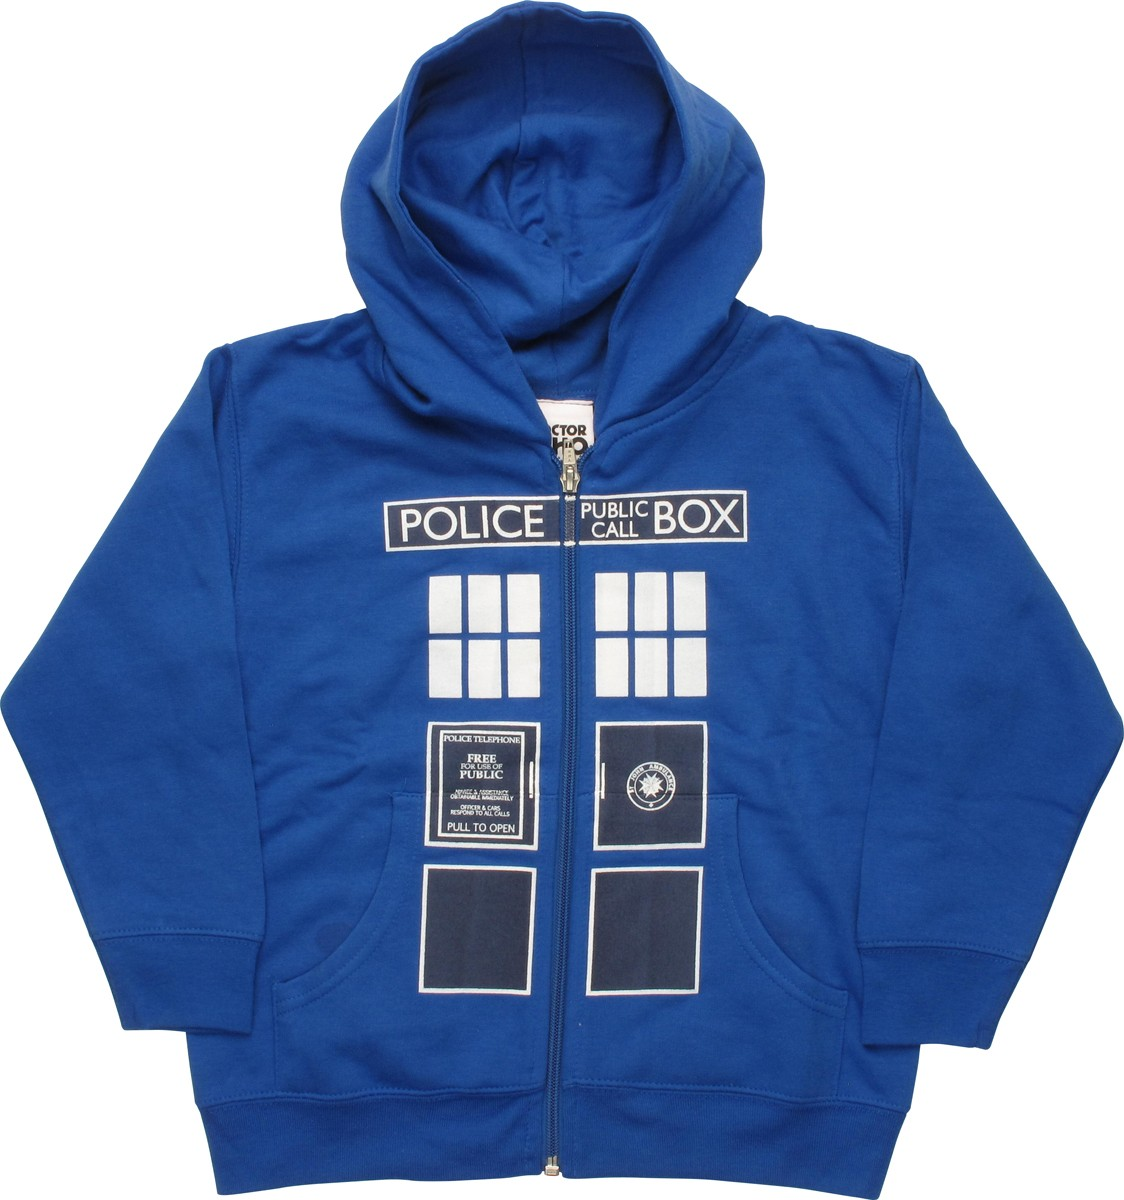 Dr who hoodie